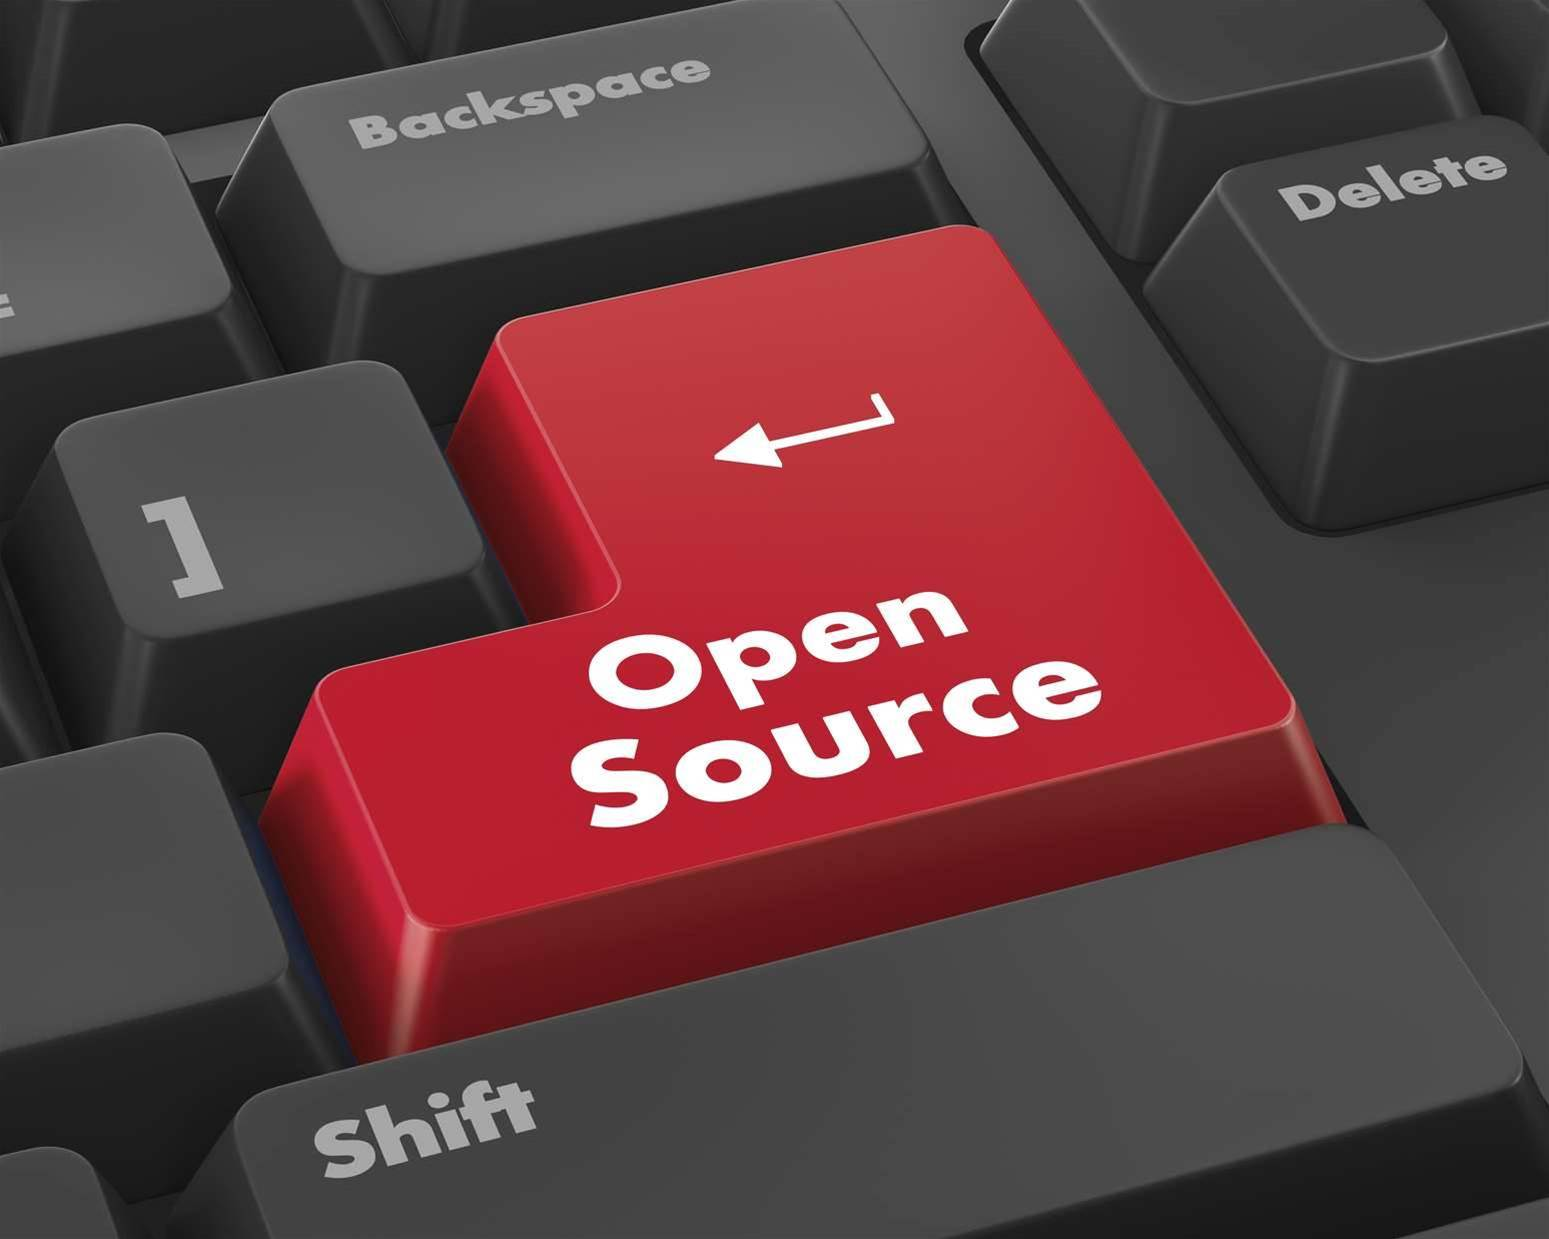 Why News Corp loves open source